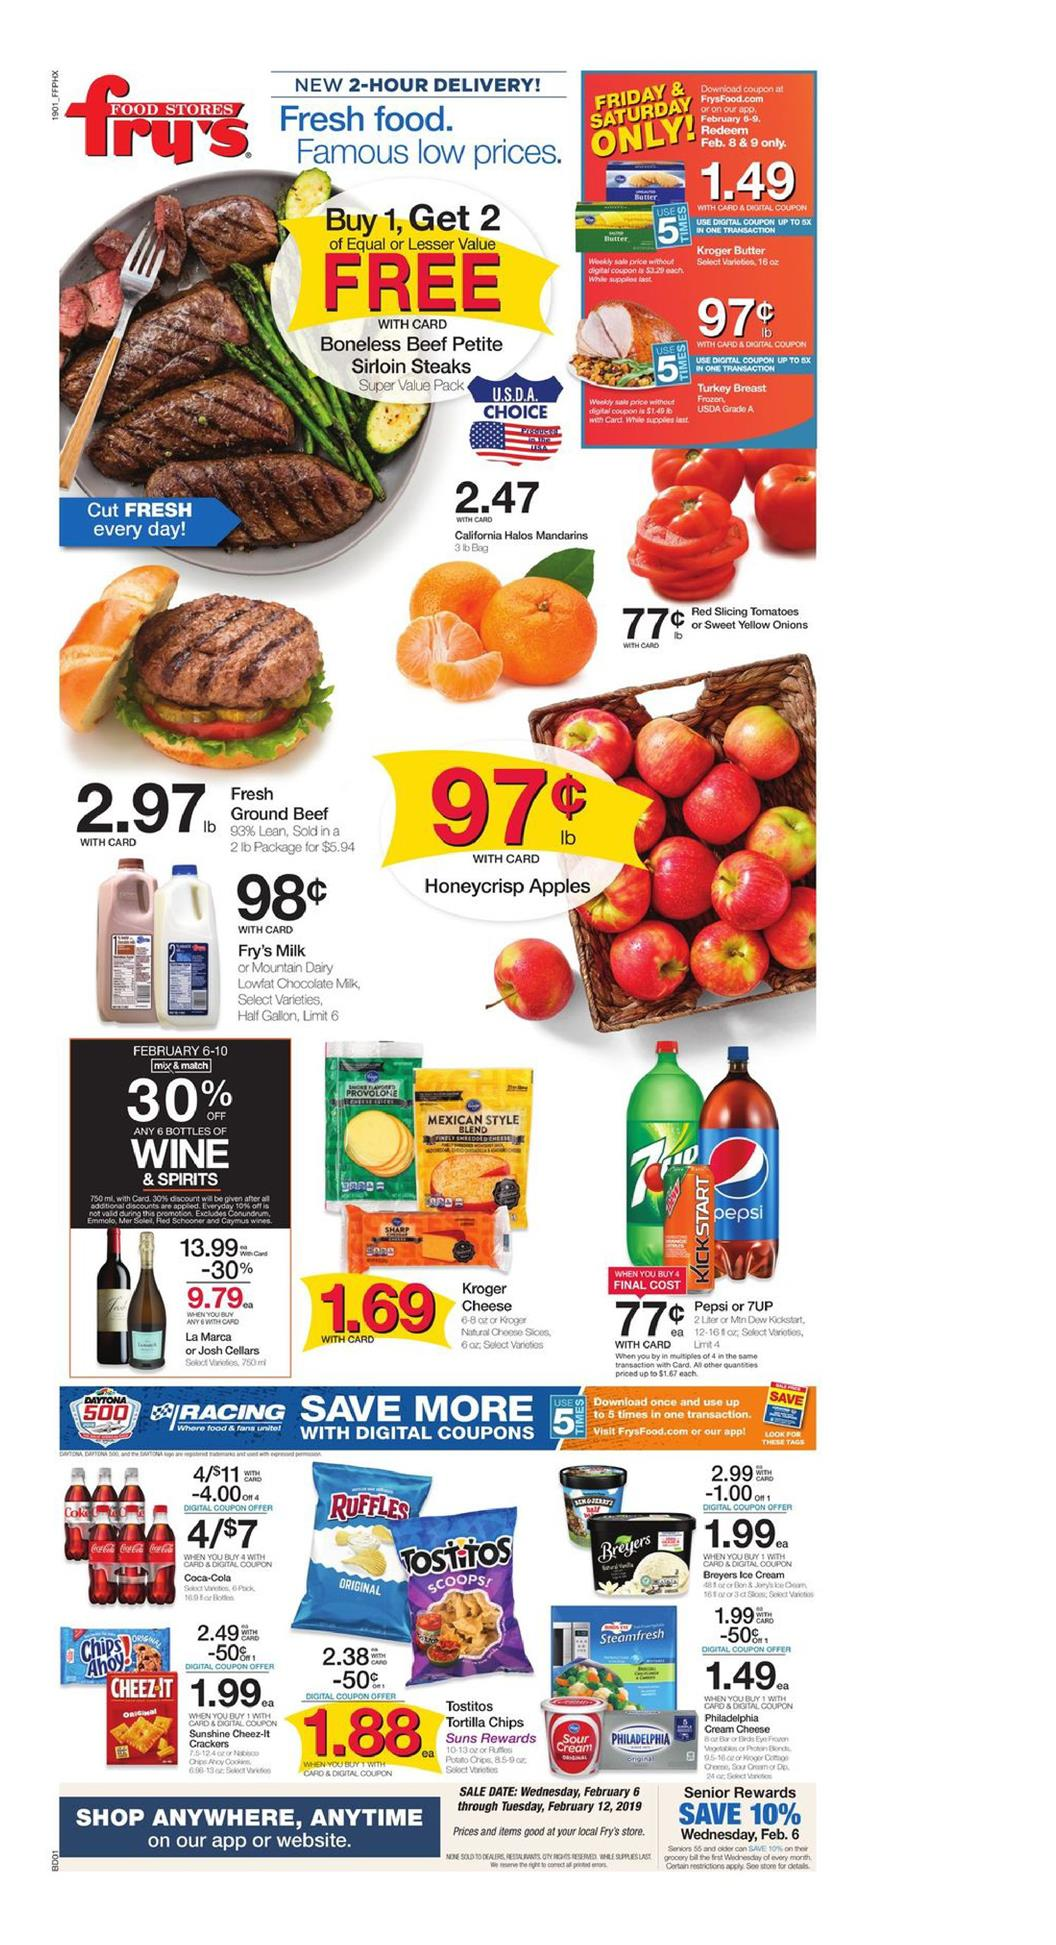 frys weekly ad feb 6 2019